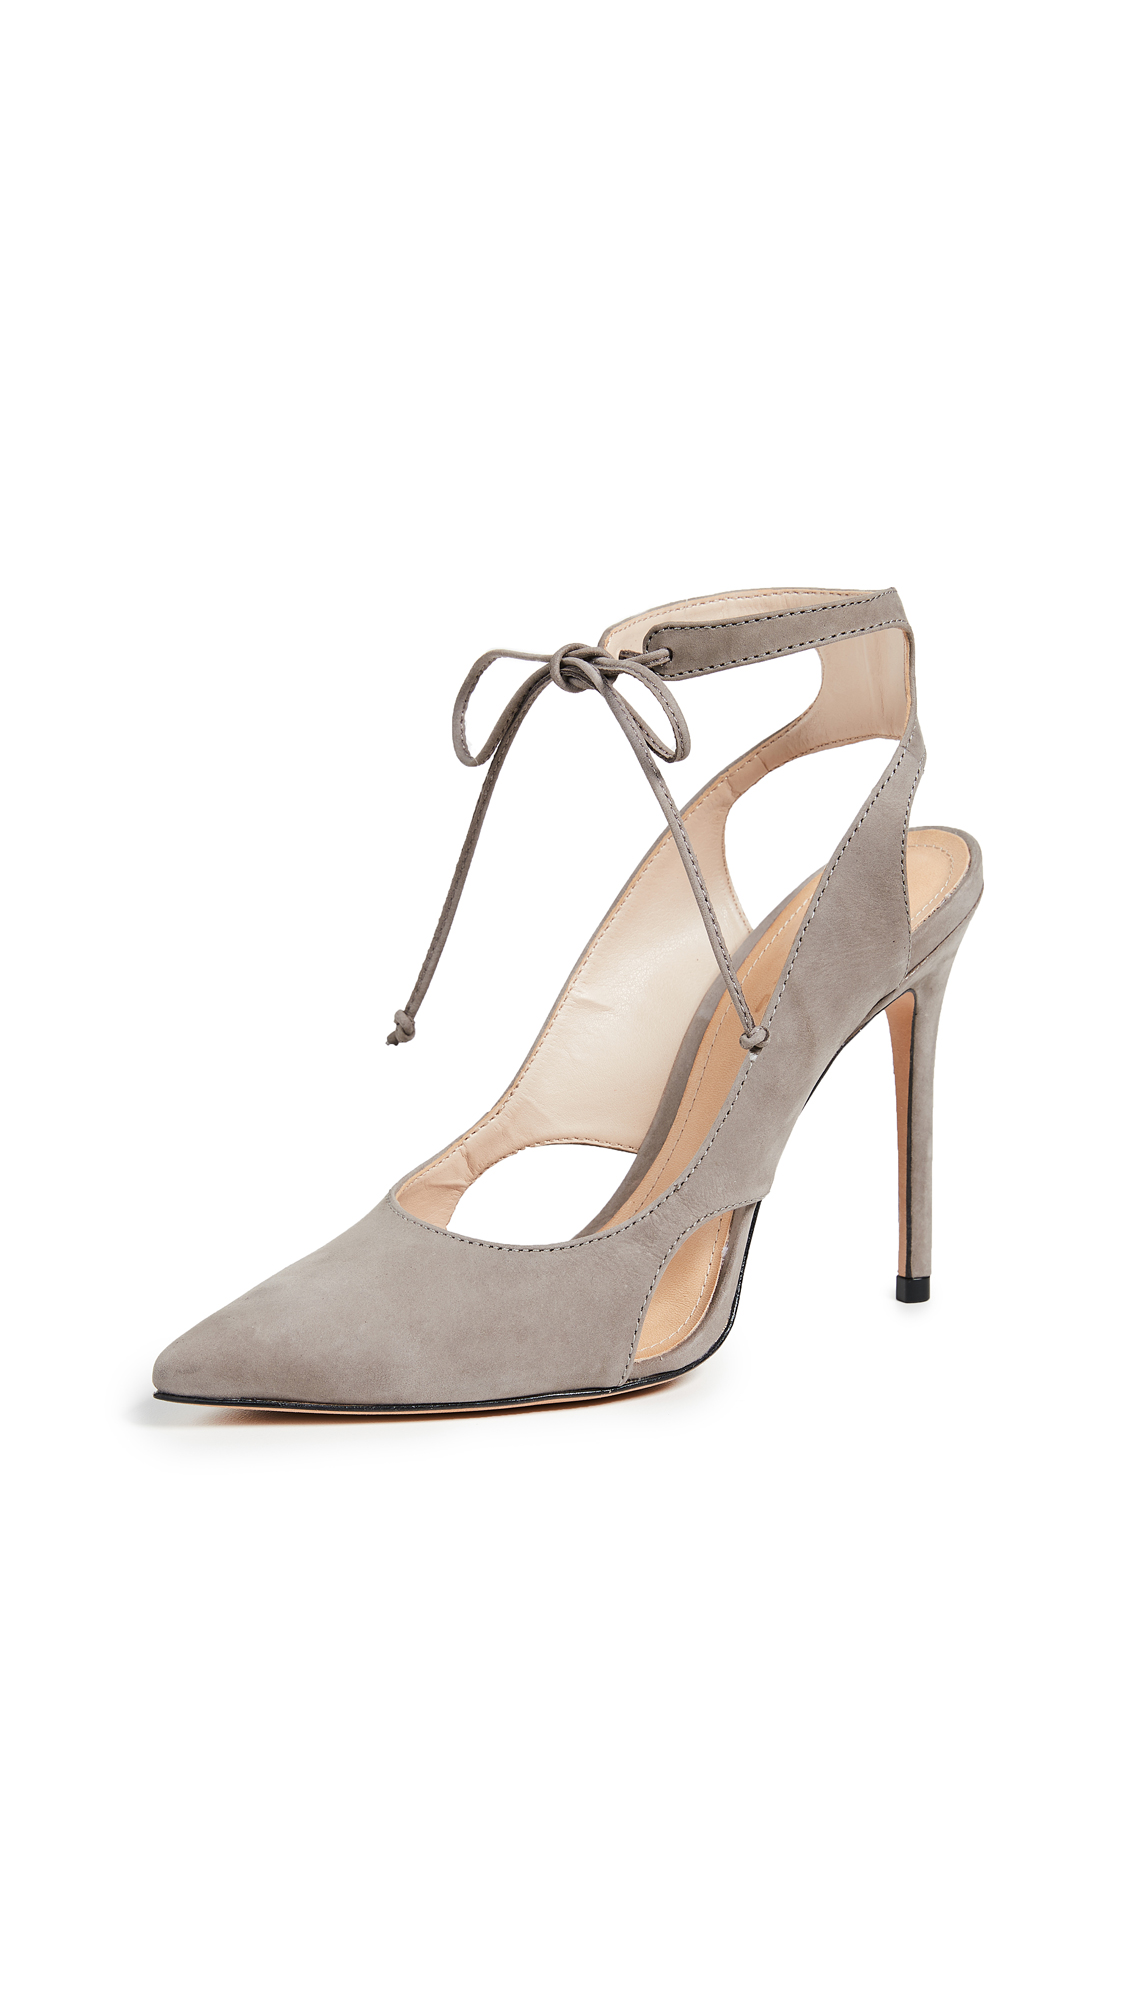 Schutz Sharon Point Toe Strappy Pumps - Mouse